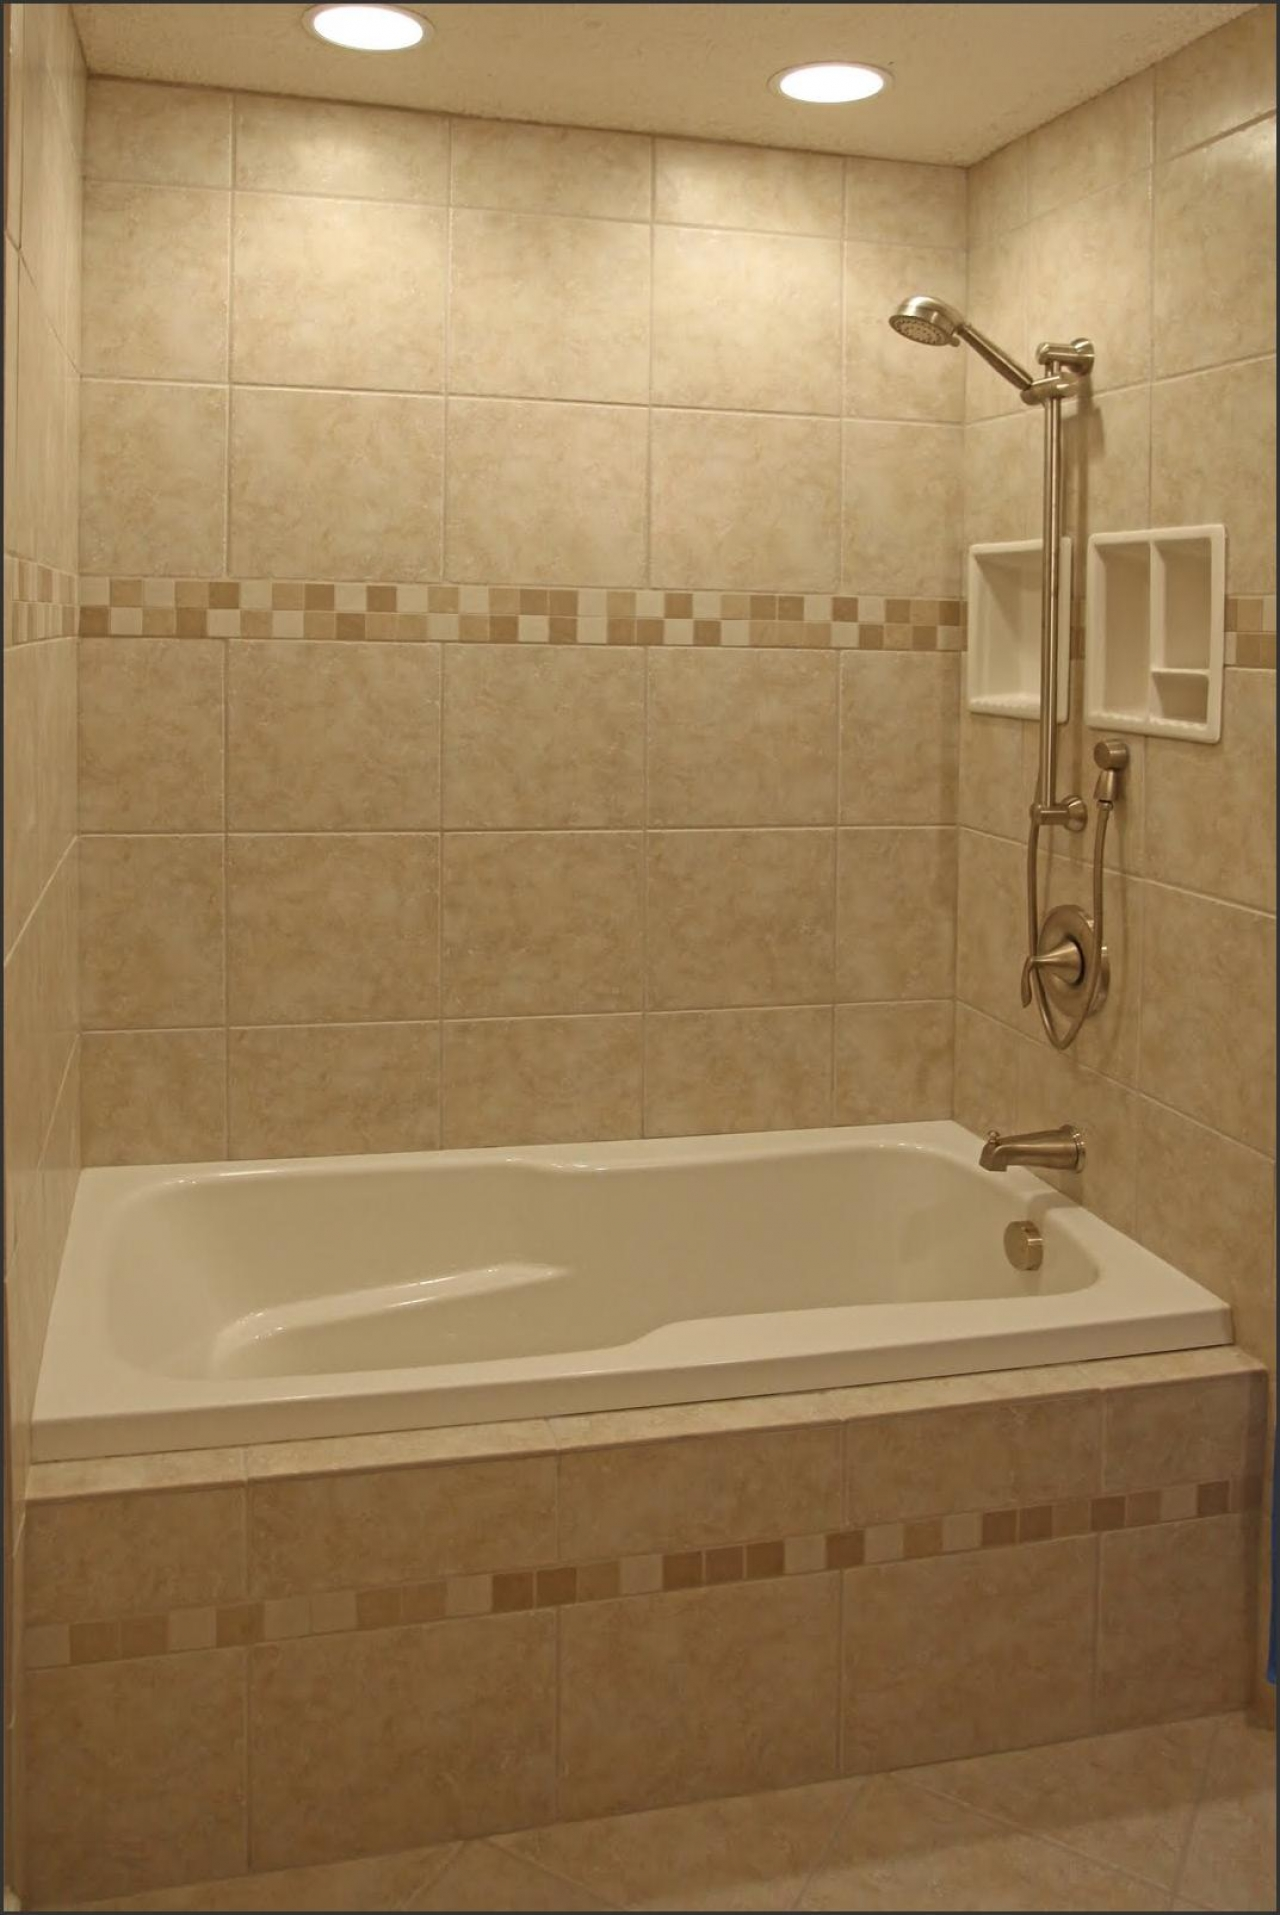 Tile Designs For Bathroom Ideas ~ Great ideas and pictures of modern small bathroom tiles